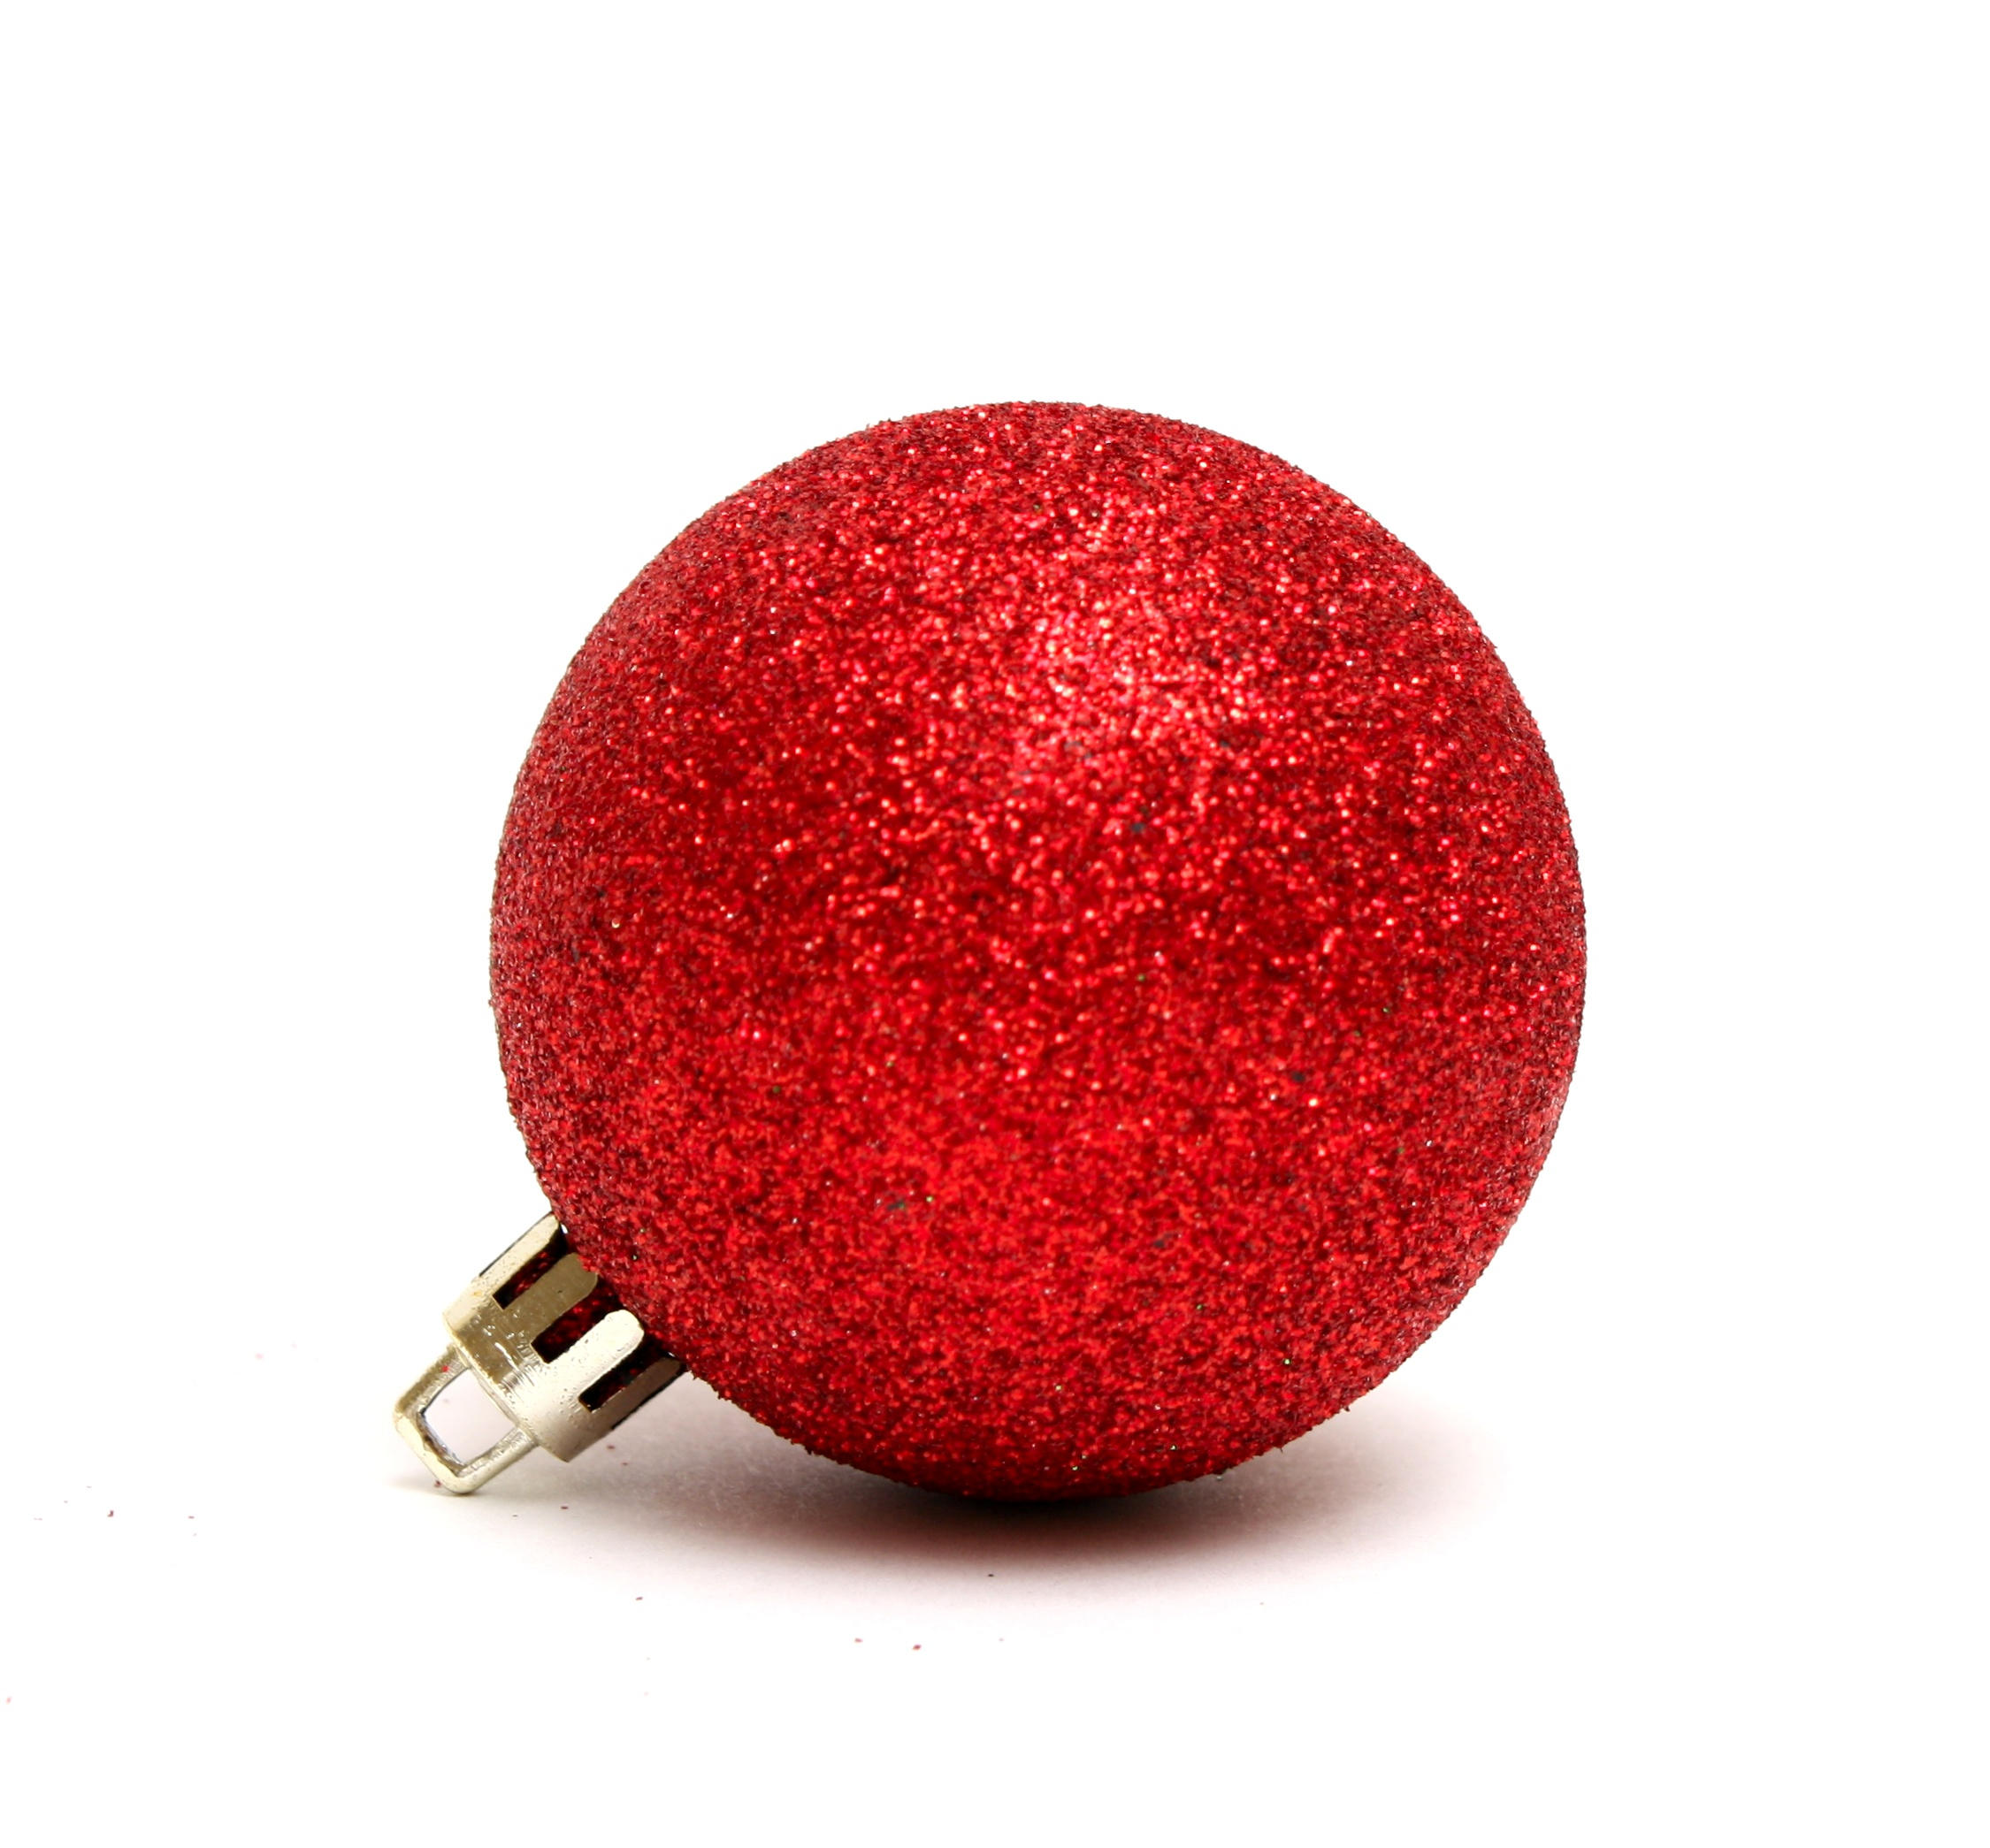 Red Christmas Ornaments.Free Photo A Red Christmas Ornament Objects Ornaments